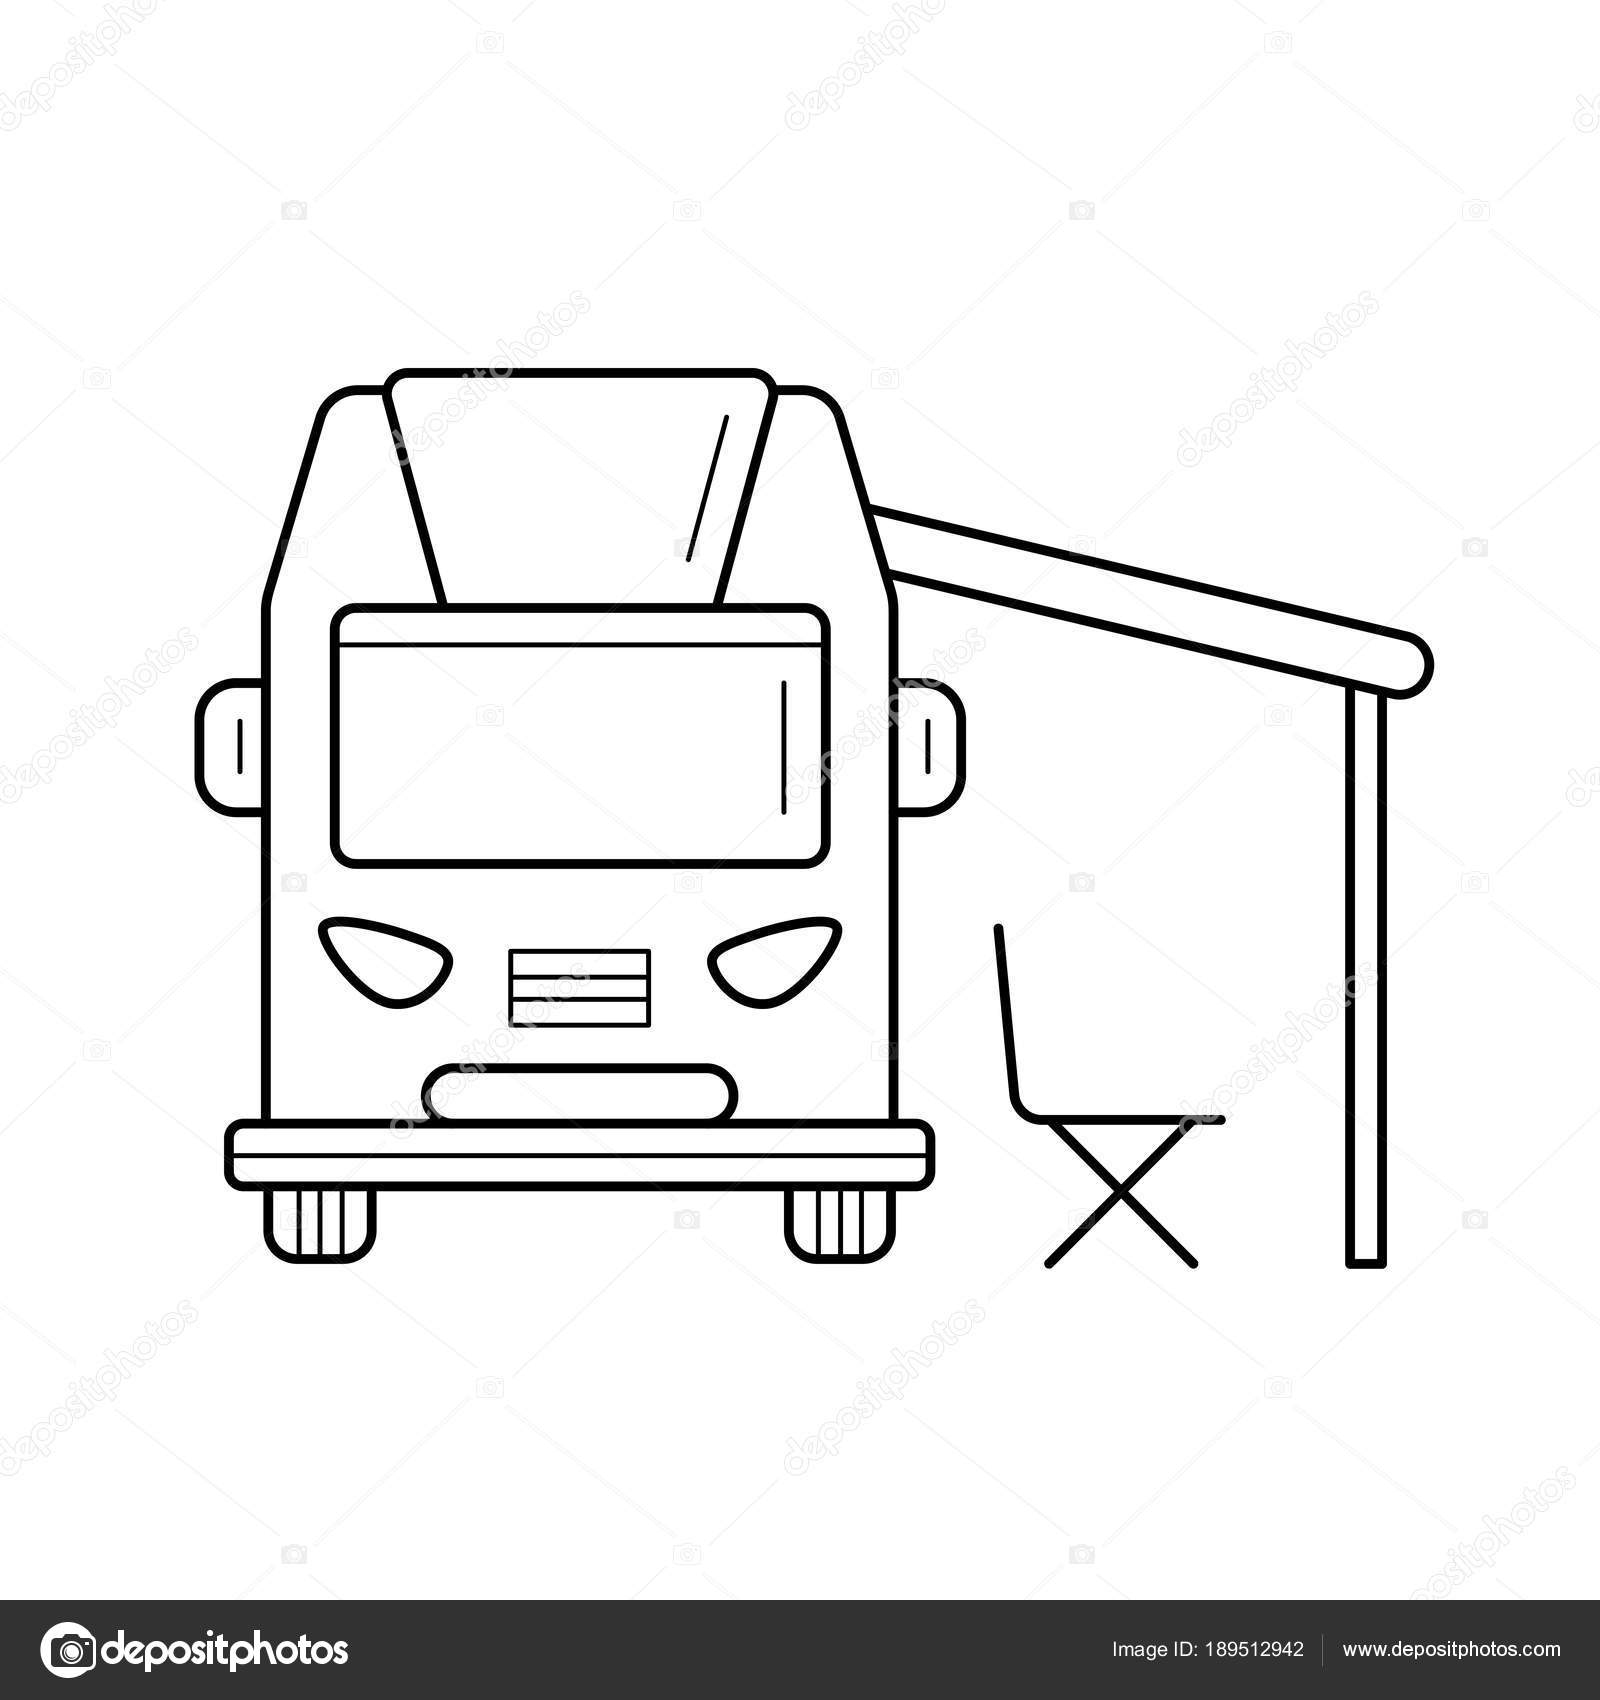 RV Camping Motorhome Line Icon Stock Vector